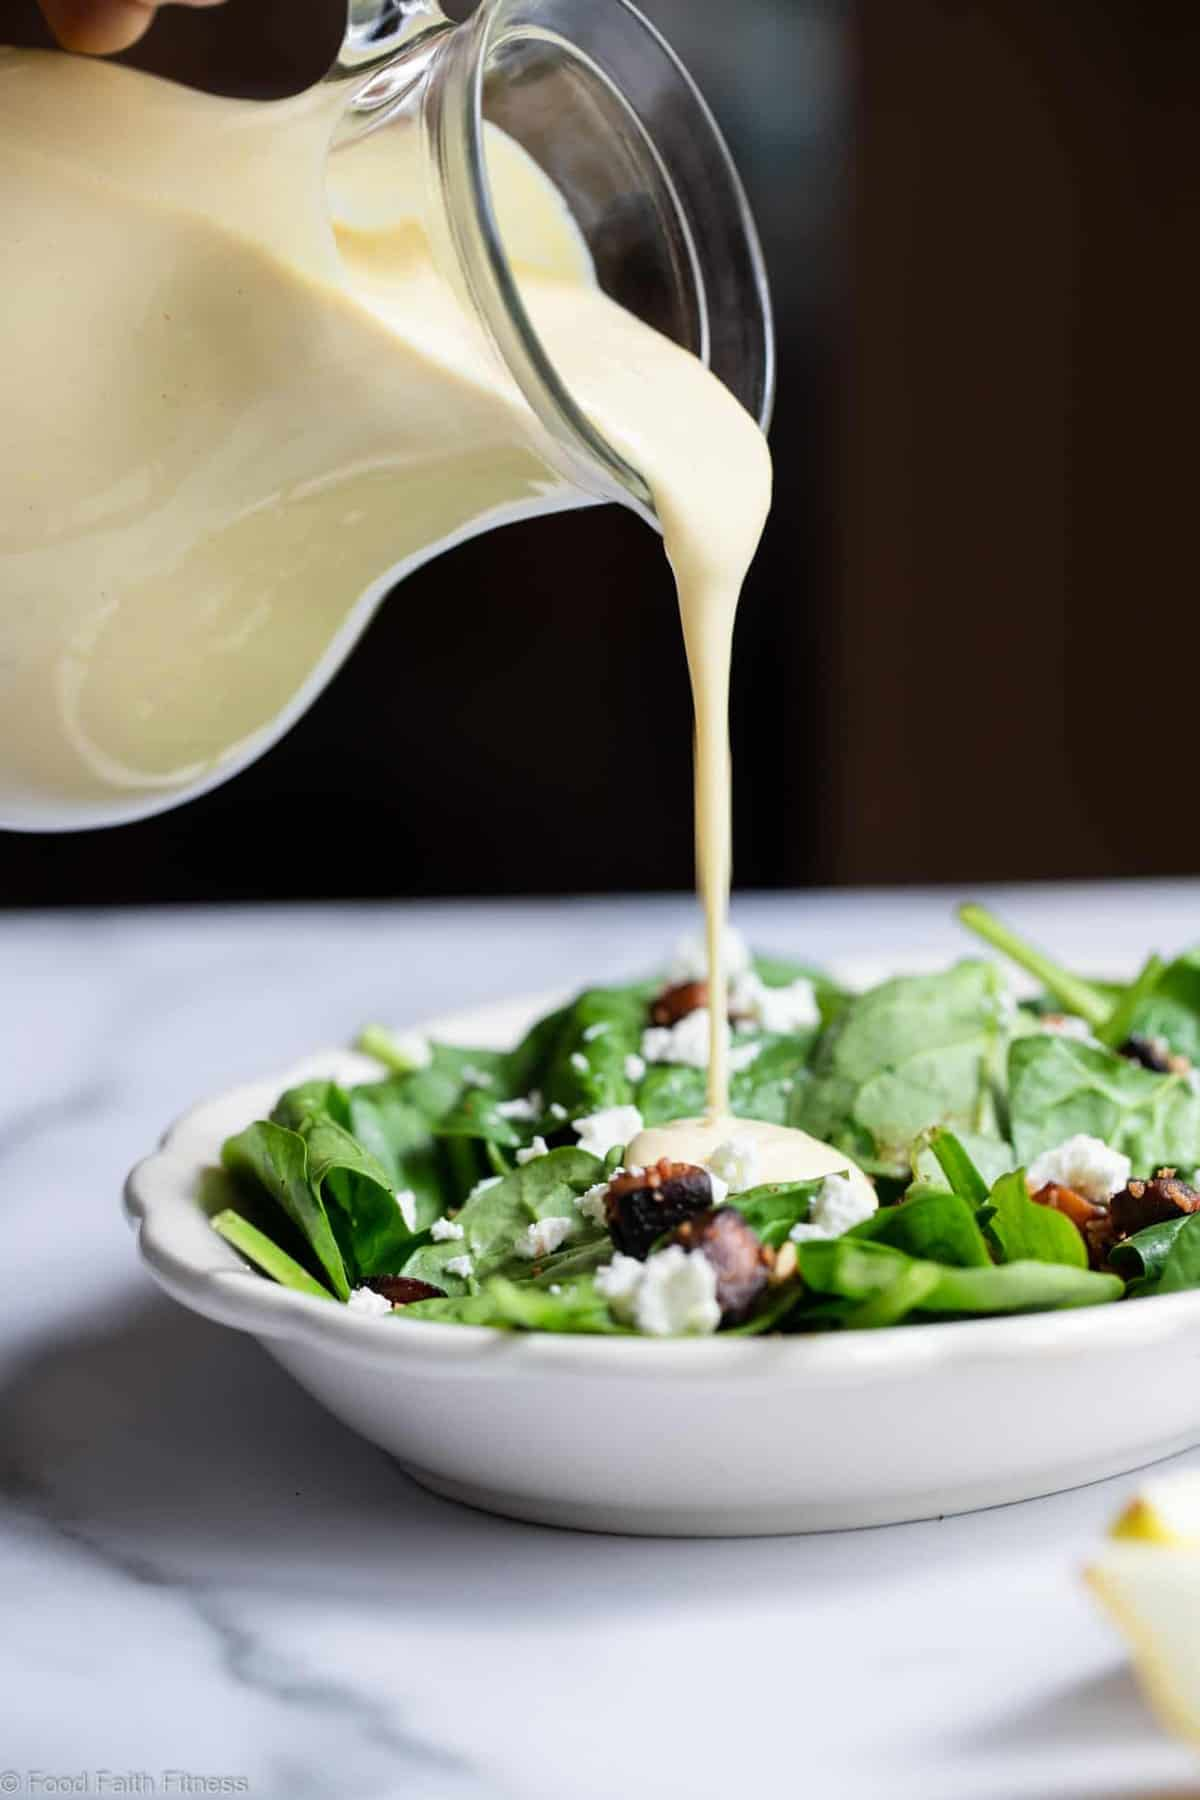 pouring tahini salad dressing onto a salad